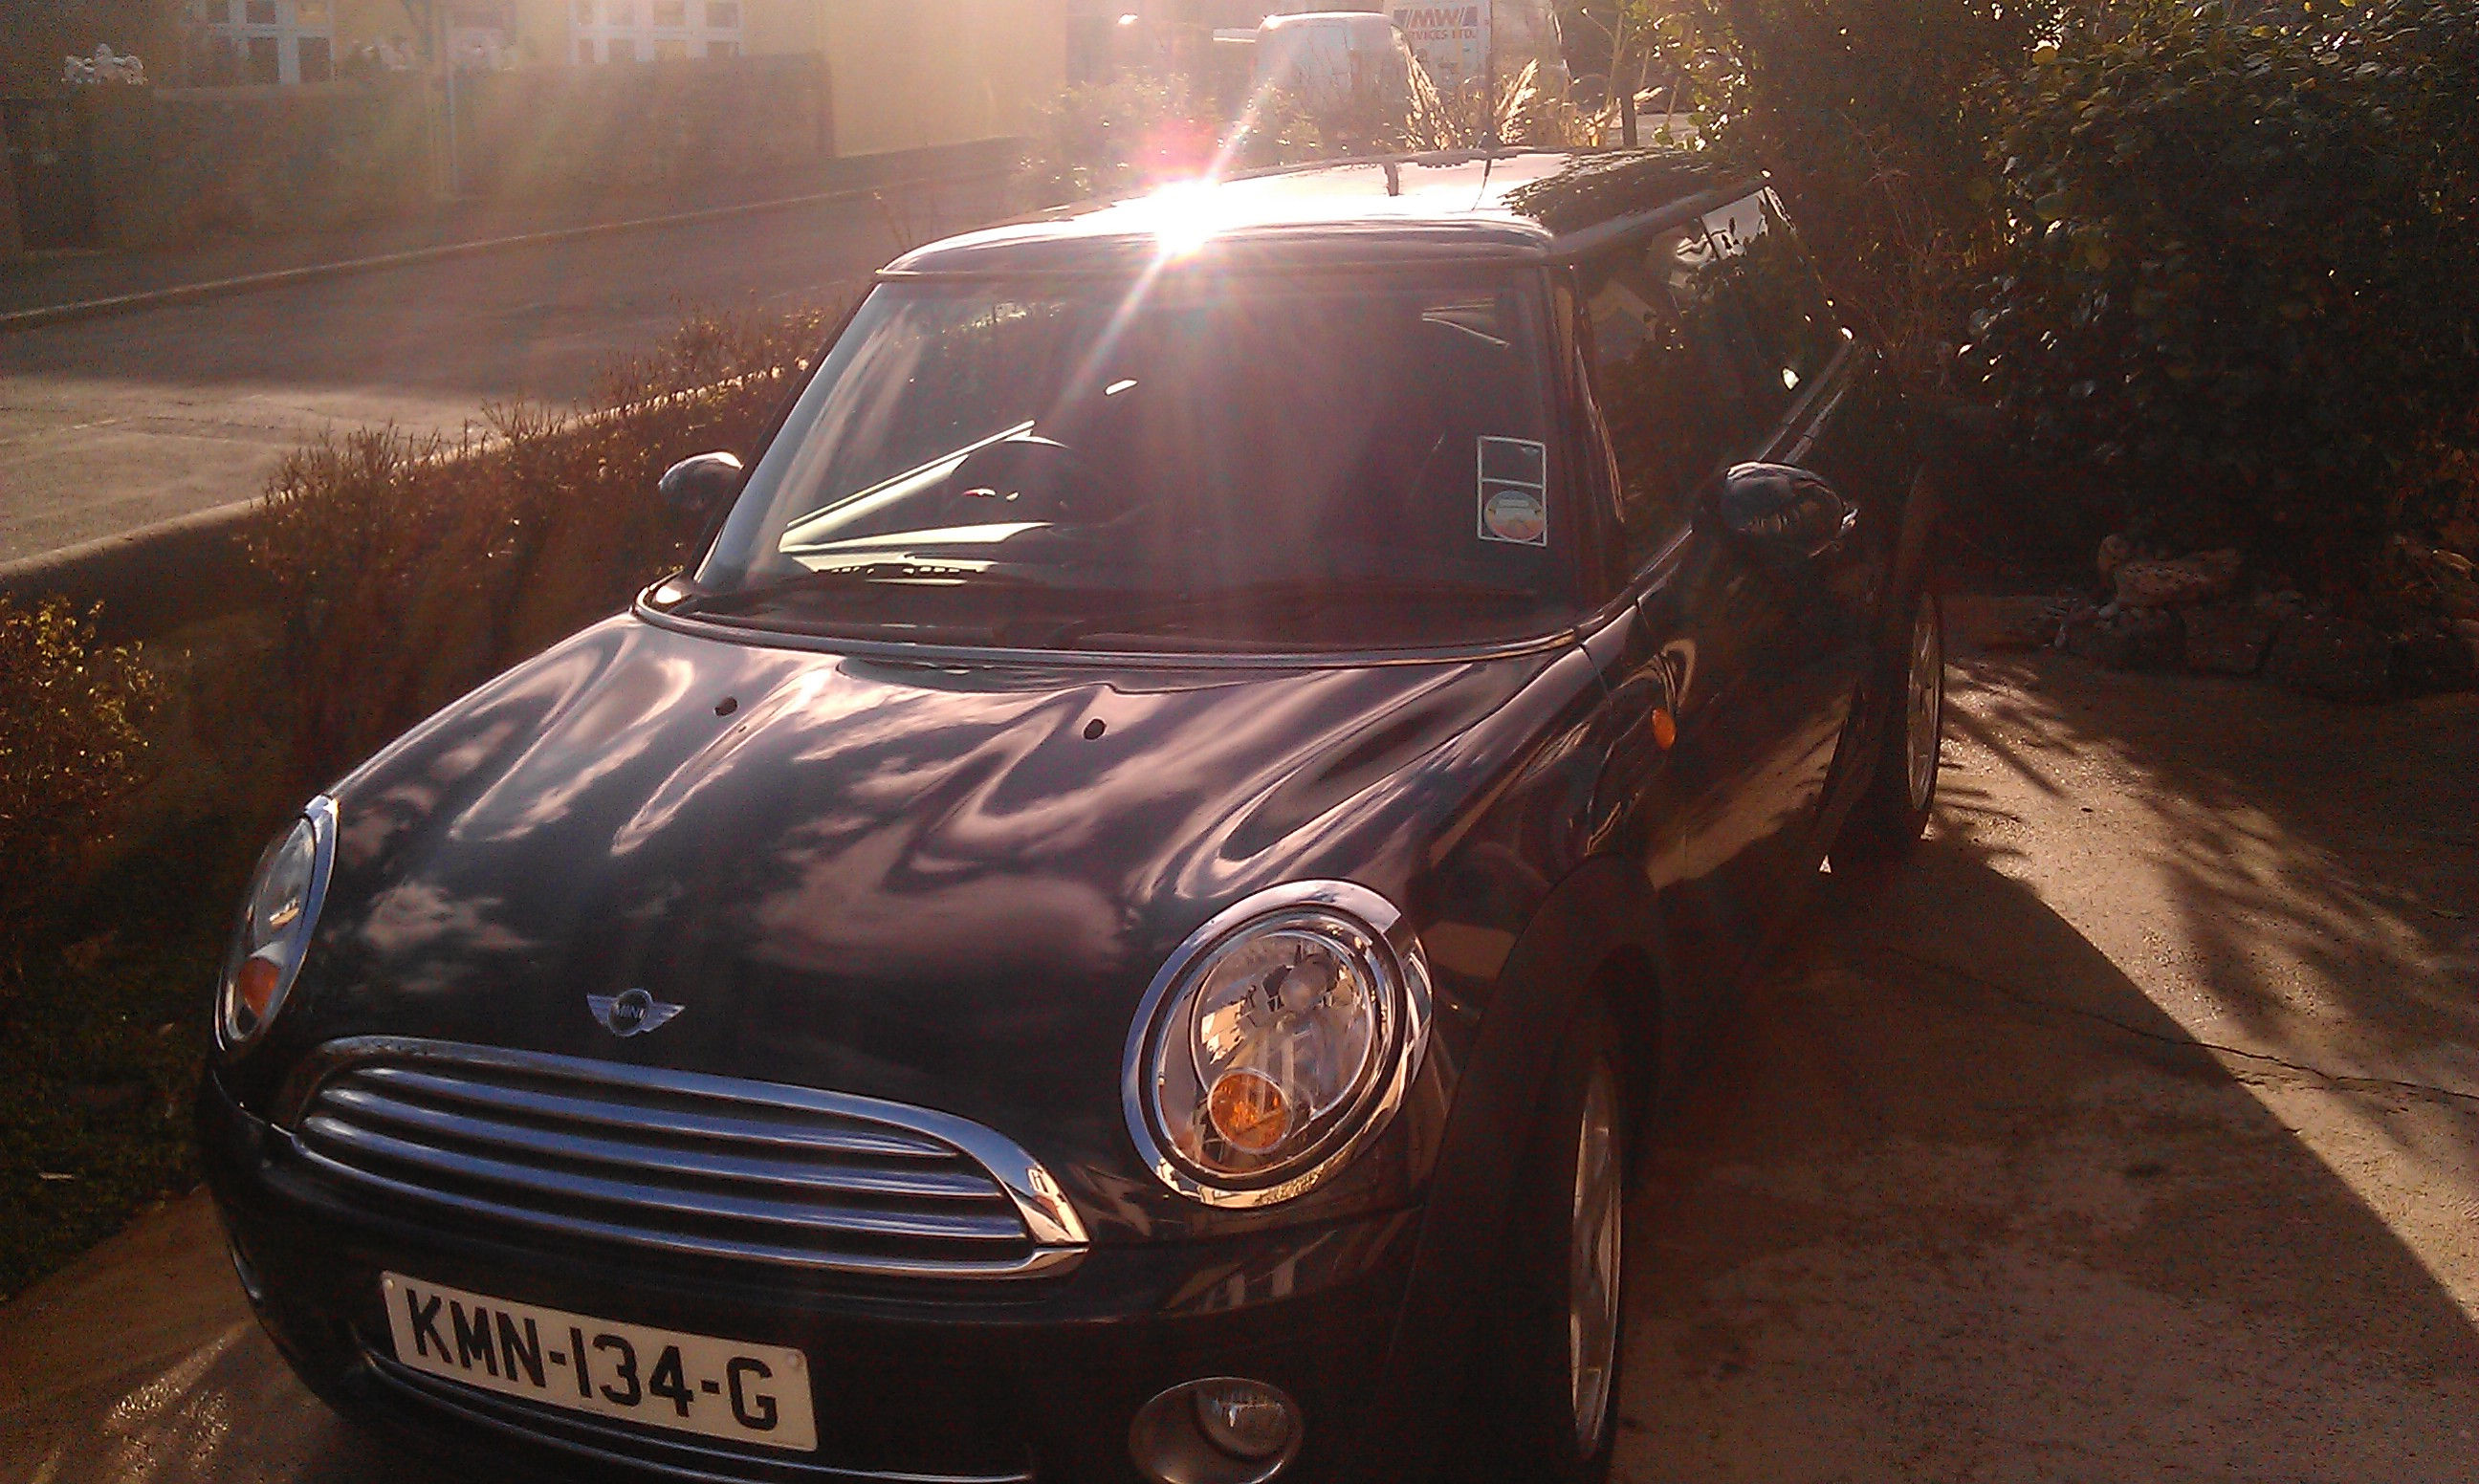 Mini Cooper 1600 from private